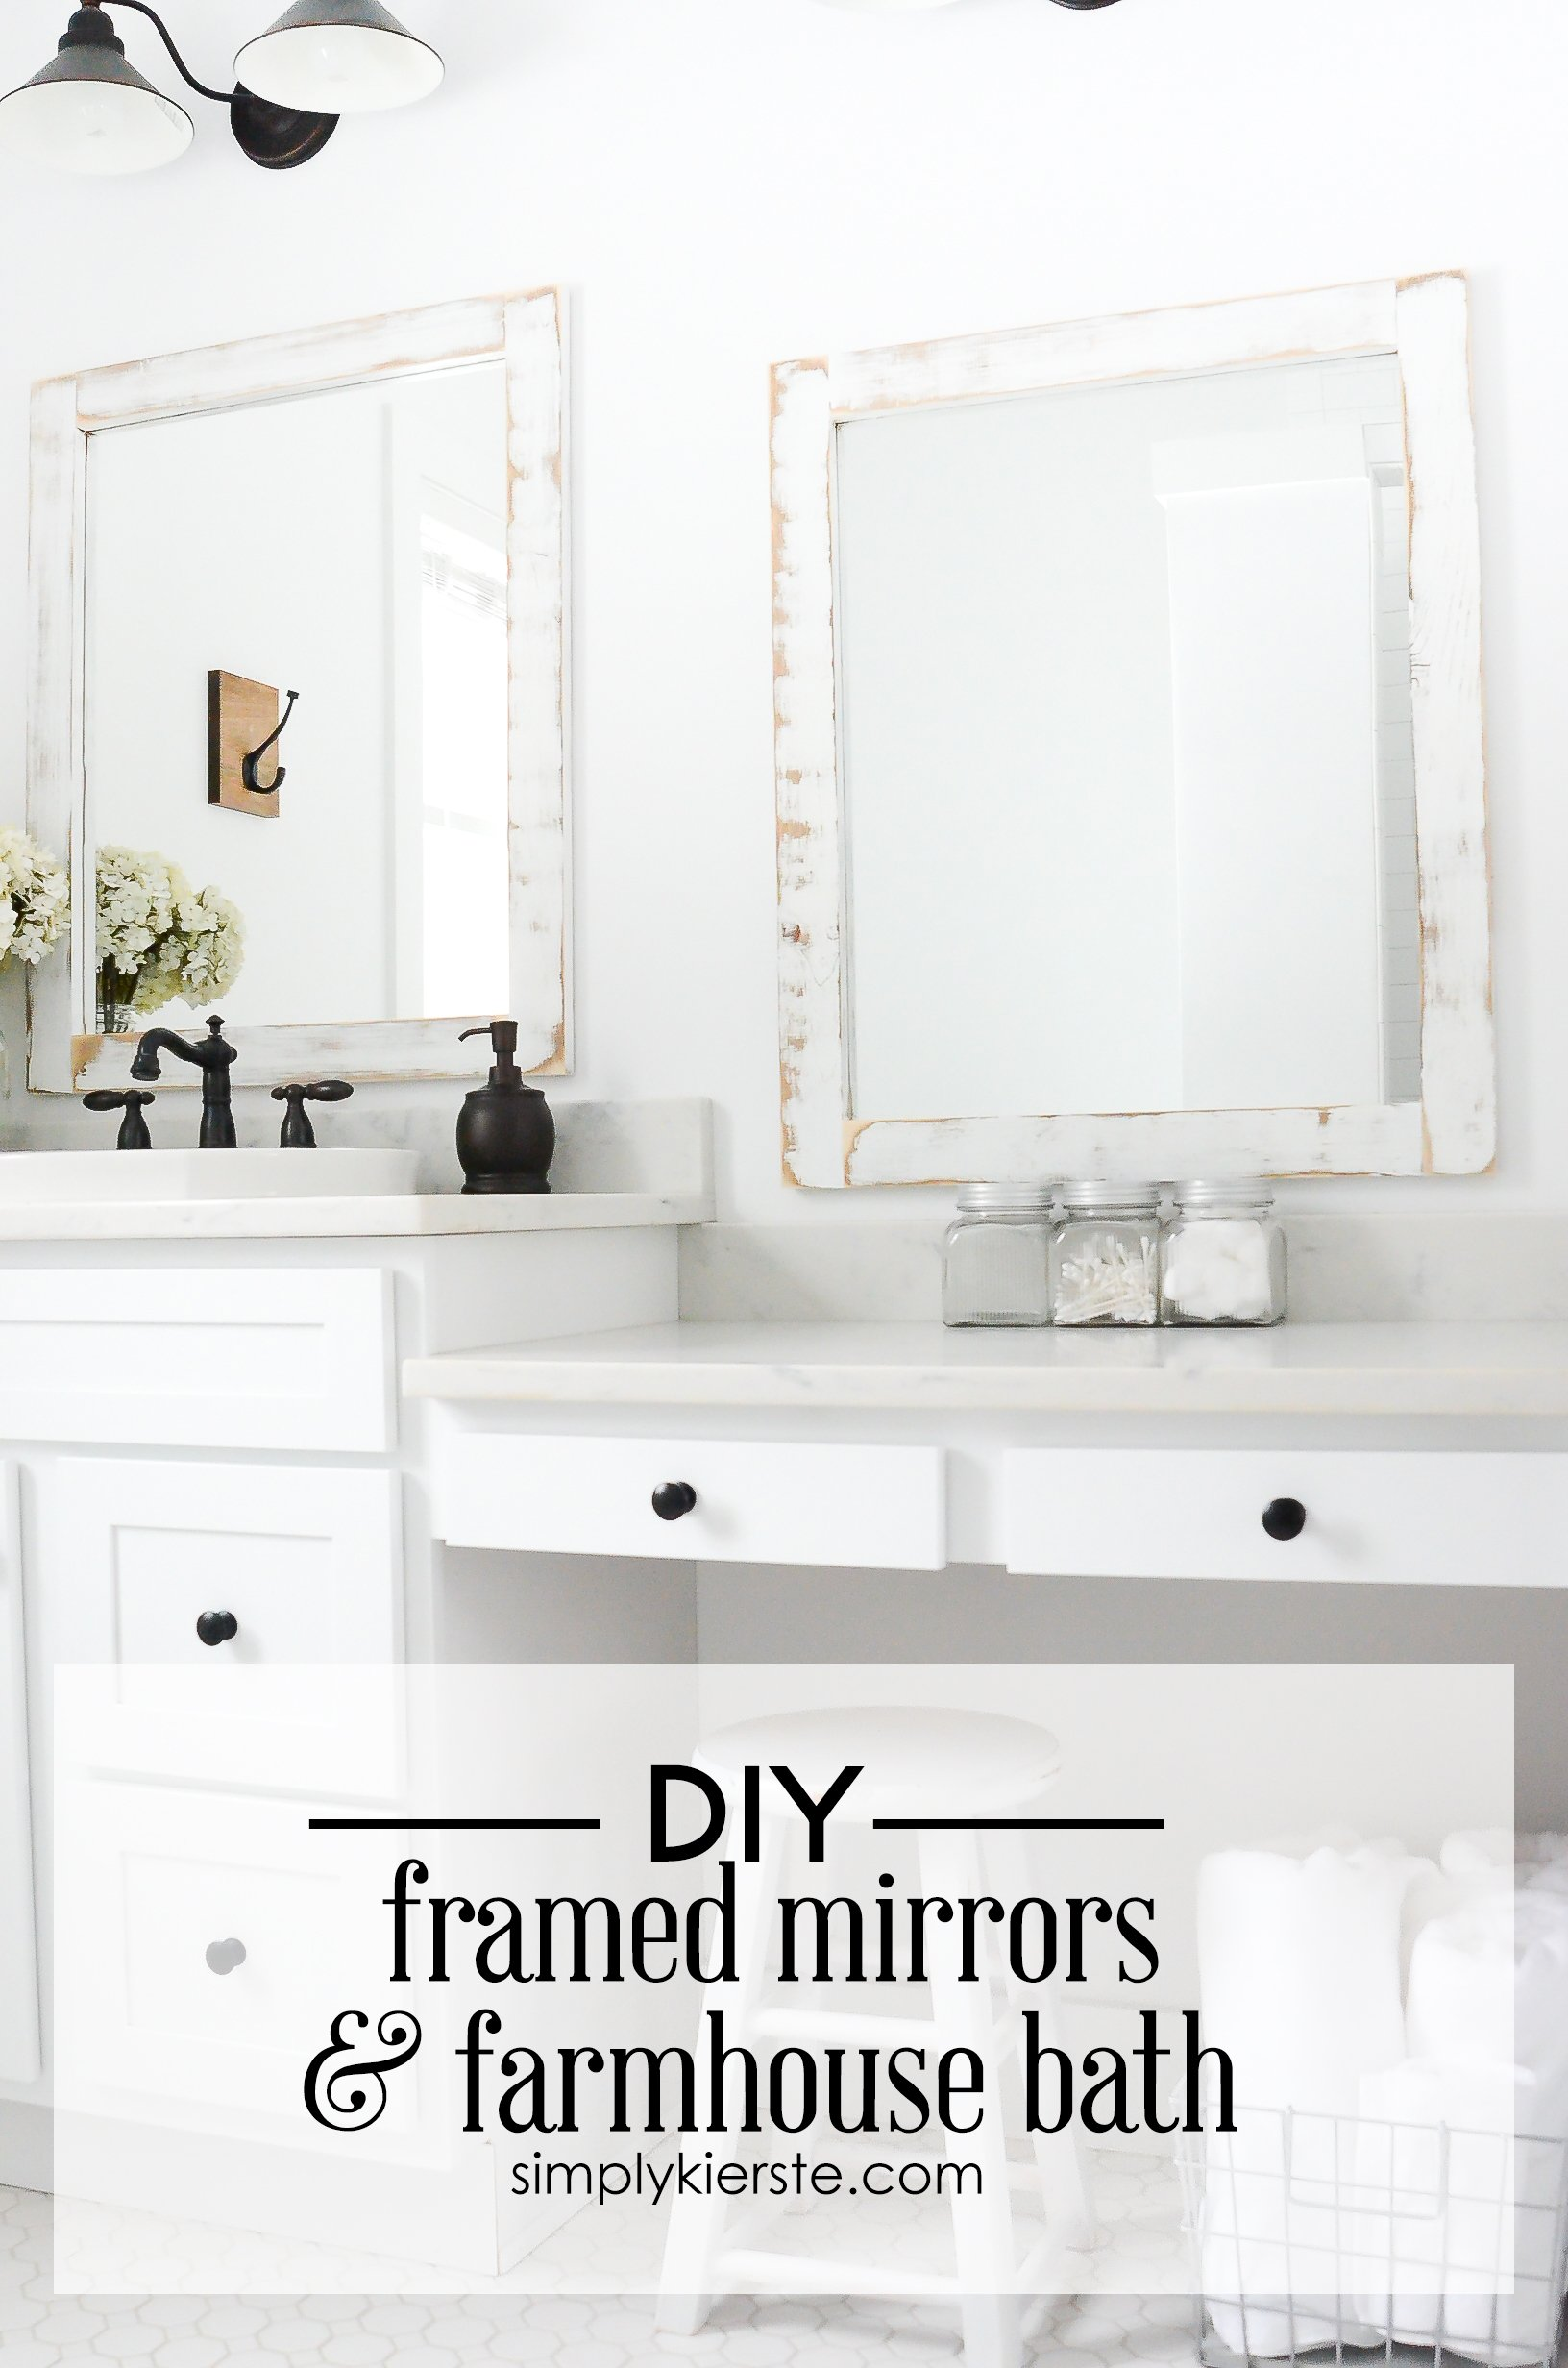 Ordinaire Farmhouse Bathroom | DIY Bathroom Mirrors | Simplykierste.com